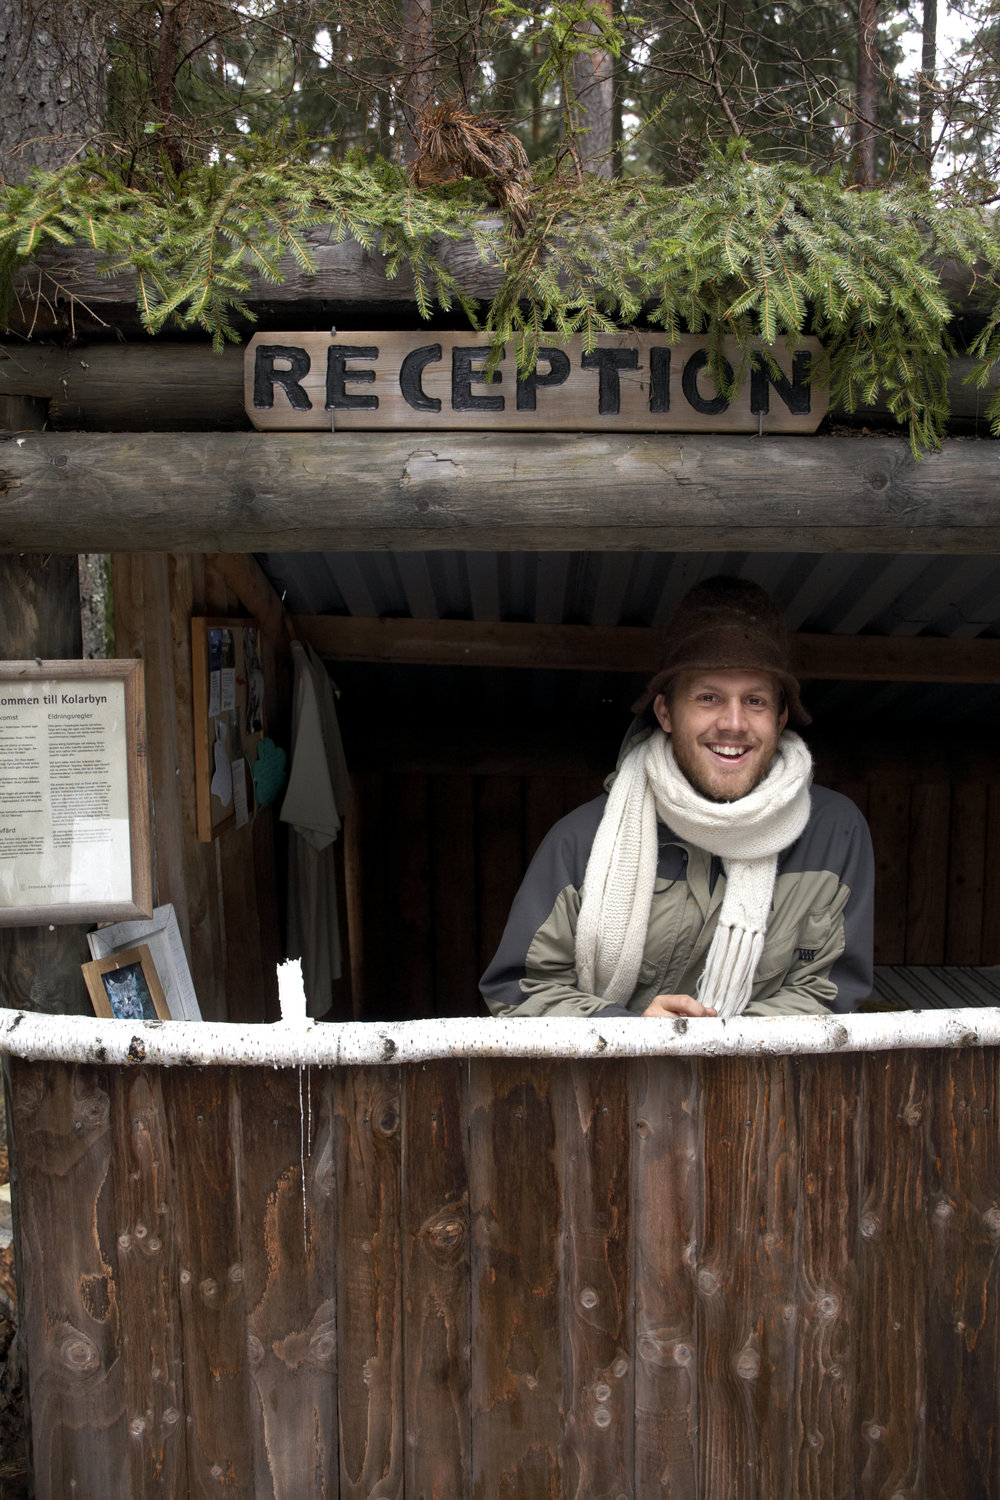 Marcus Eldh opened Kolarbyn Ecolodge to a wider public in cooperation with the Swedish Tourist Association in 2004. Since then thousands of visitors from all over the World has stayed here.